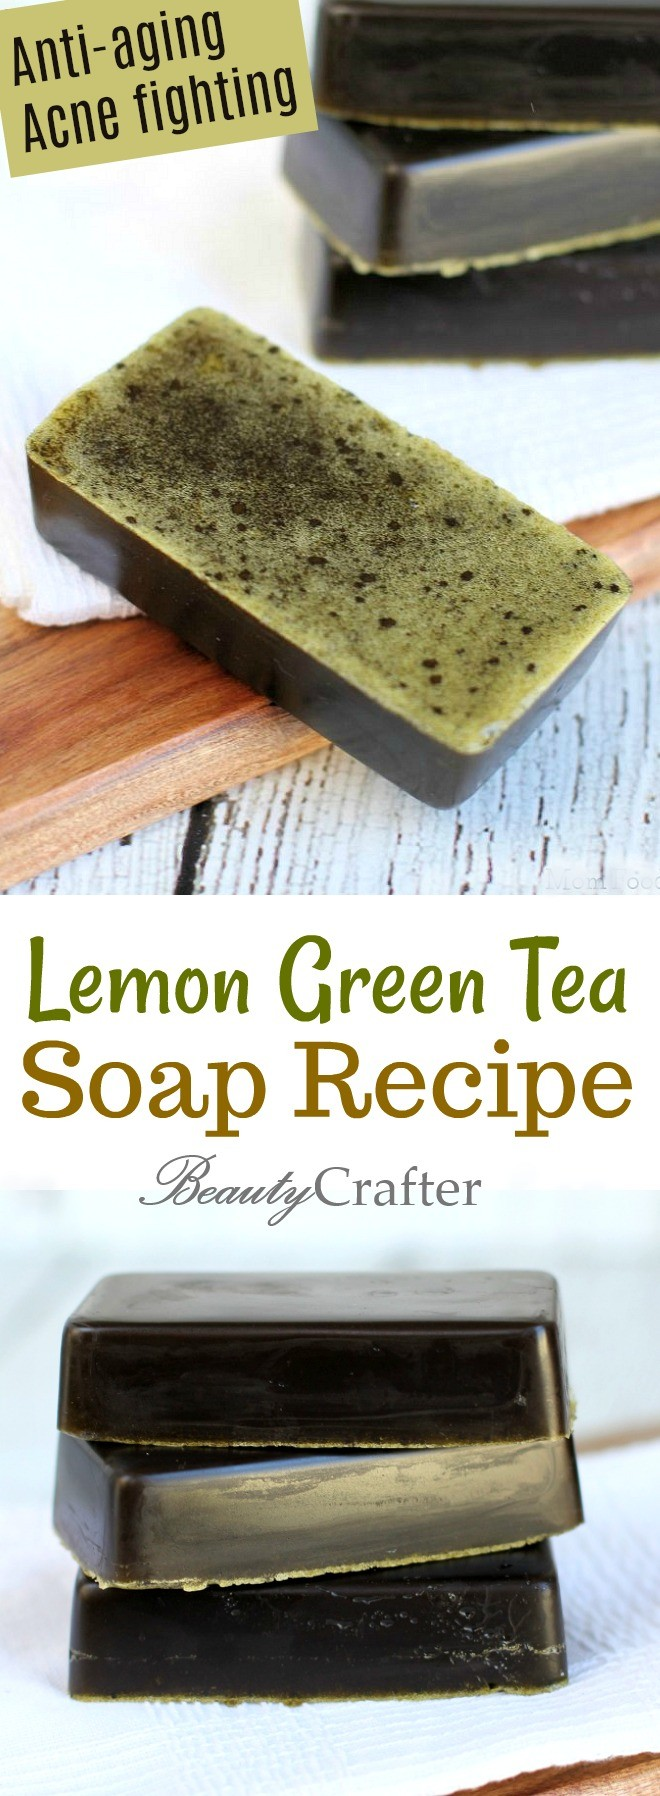 Lemon Green Tea Soap Recipe DIY , anti-aging and acne fighting soap